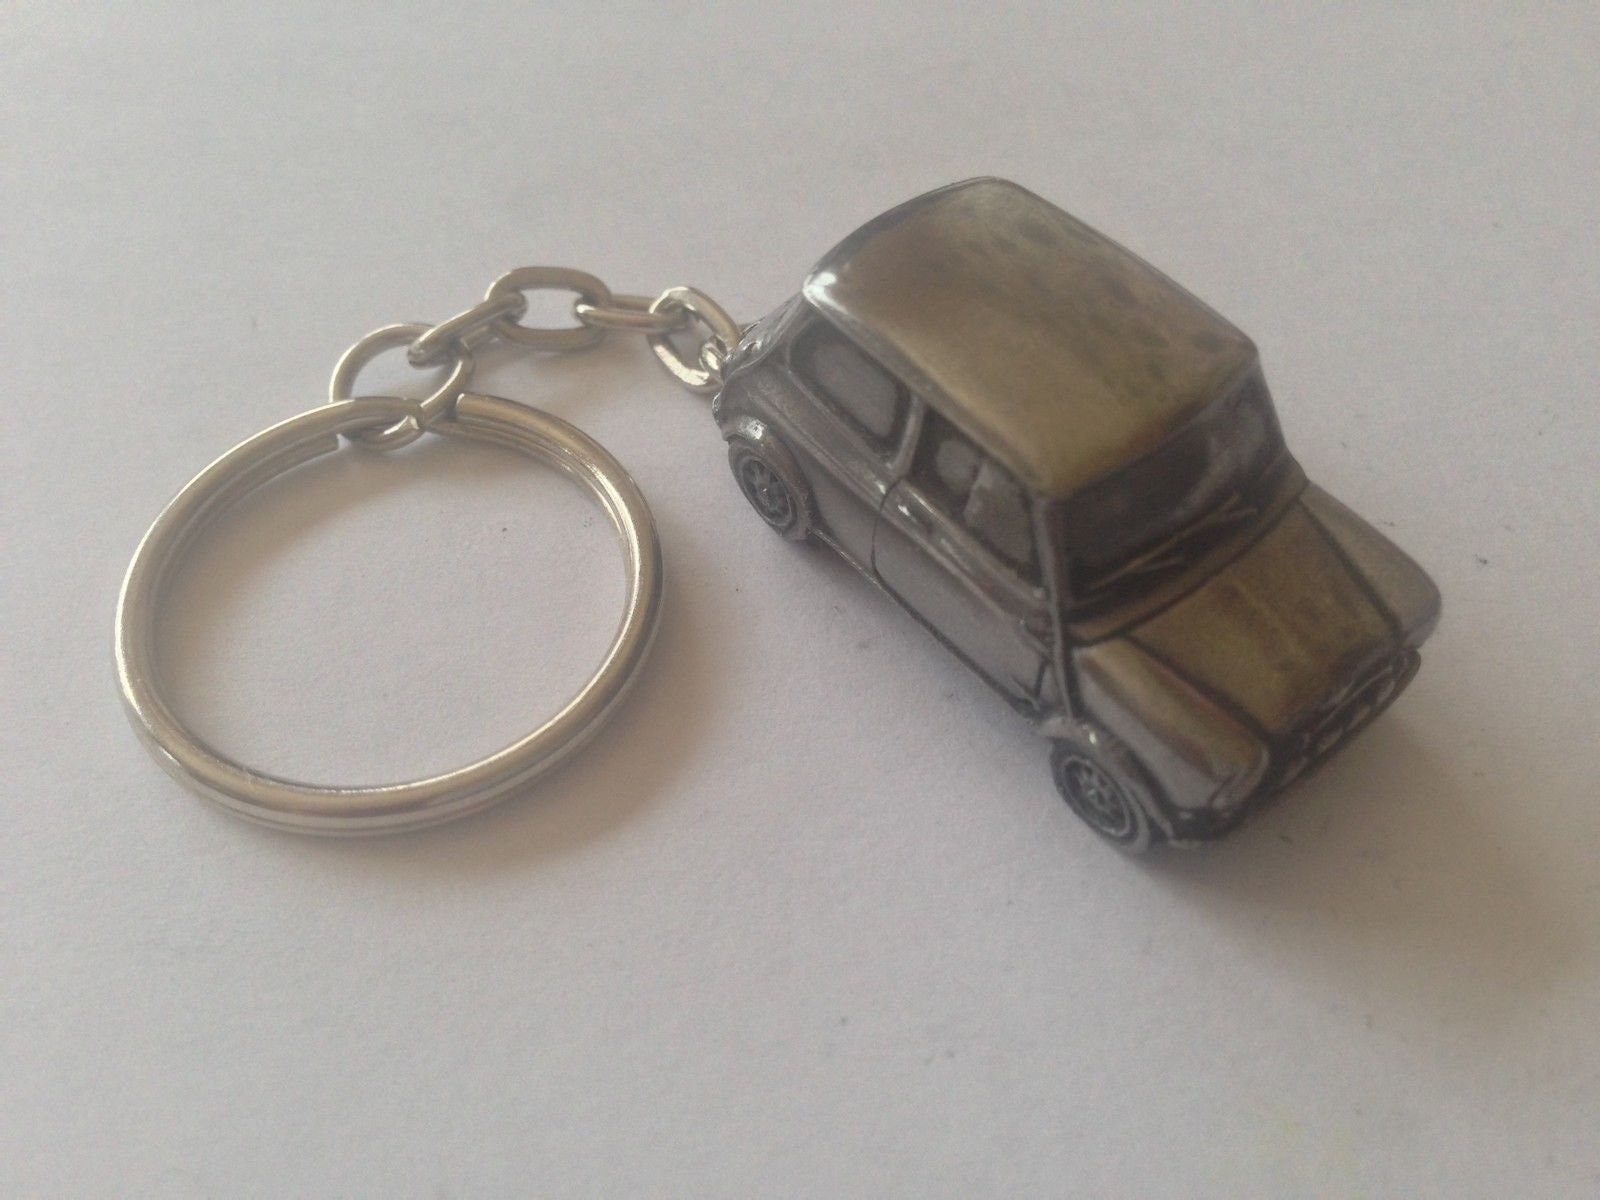 GREAT GIFT IDEA MINI COOPER CAR PIN BADGE REAL PEWTER MADE IN THE UK NEW